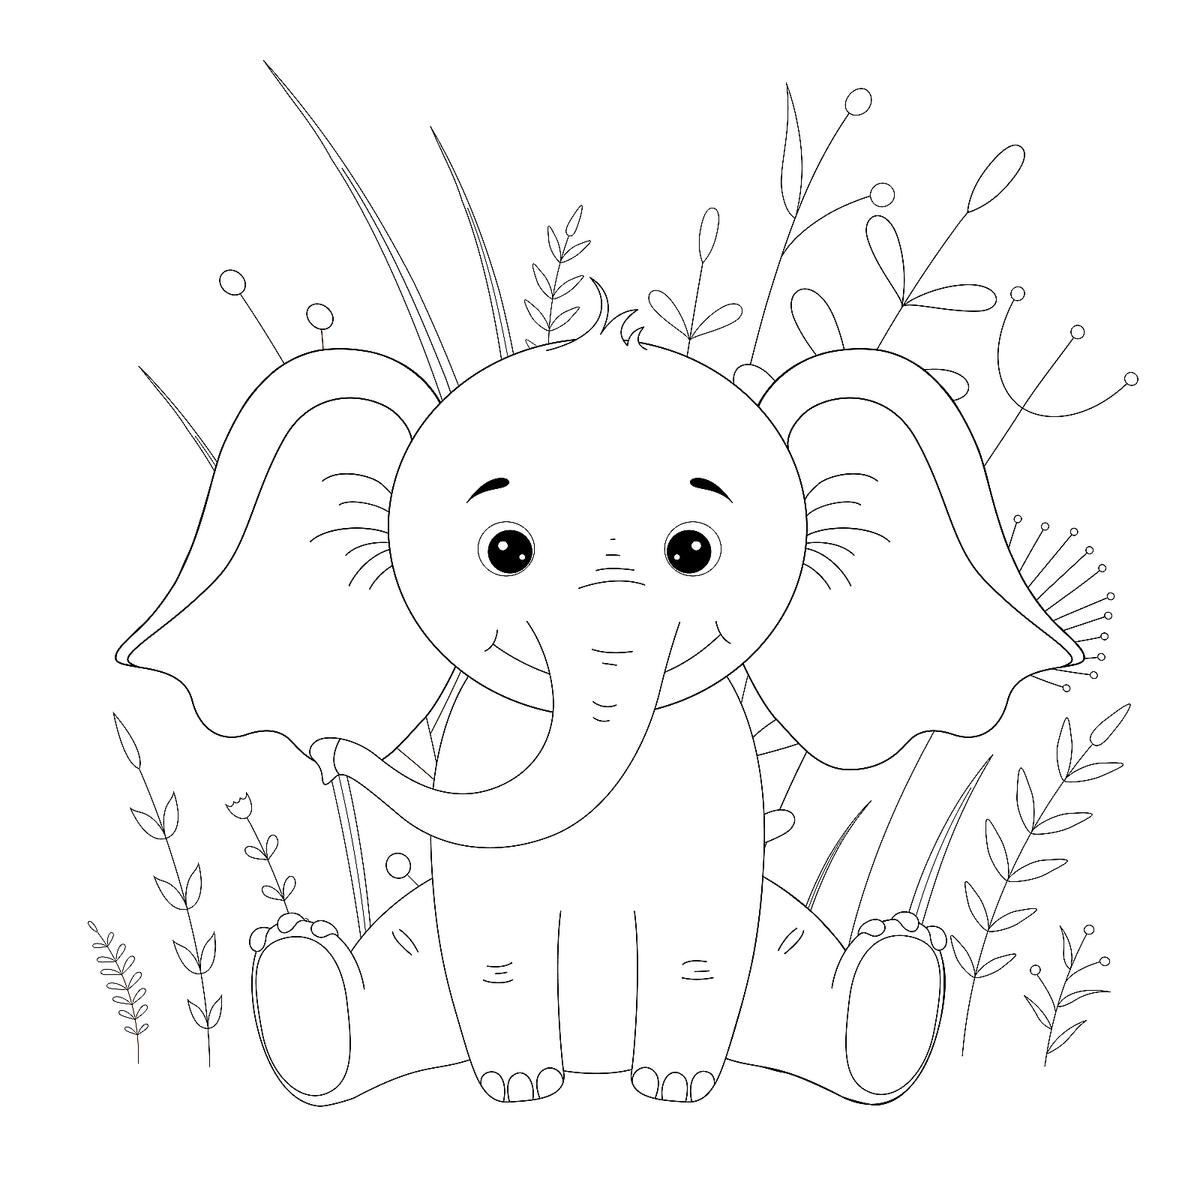 free printable elephant pictures free printable elephant coloring pages for kids printable elephant free pictures 1 1